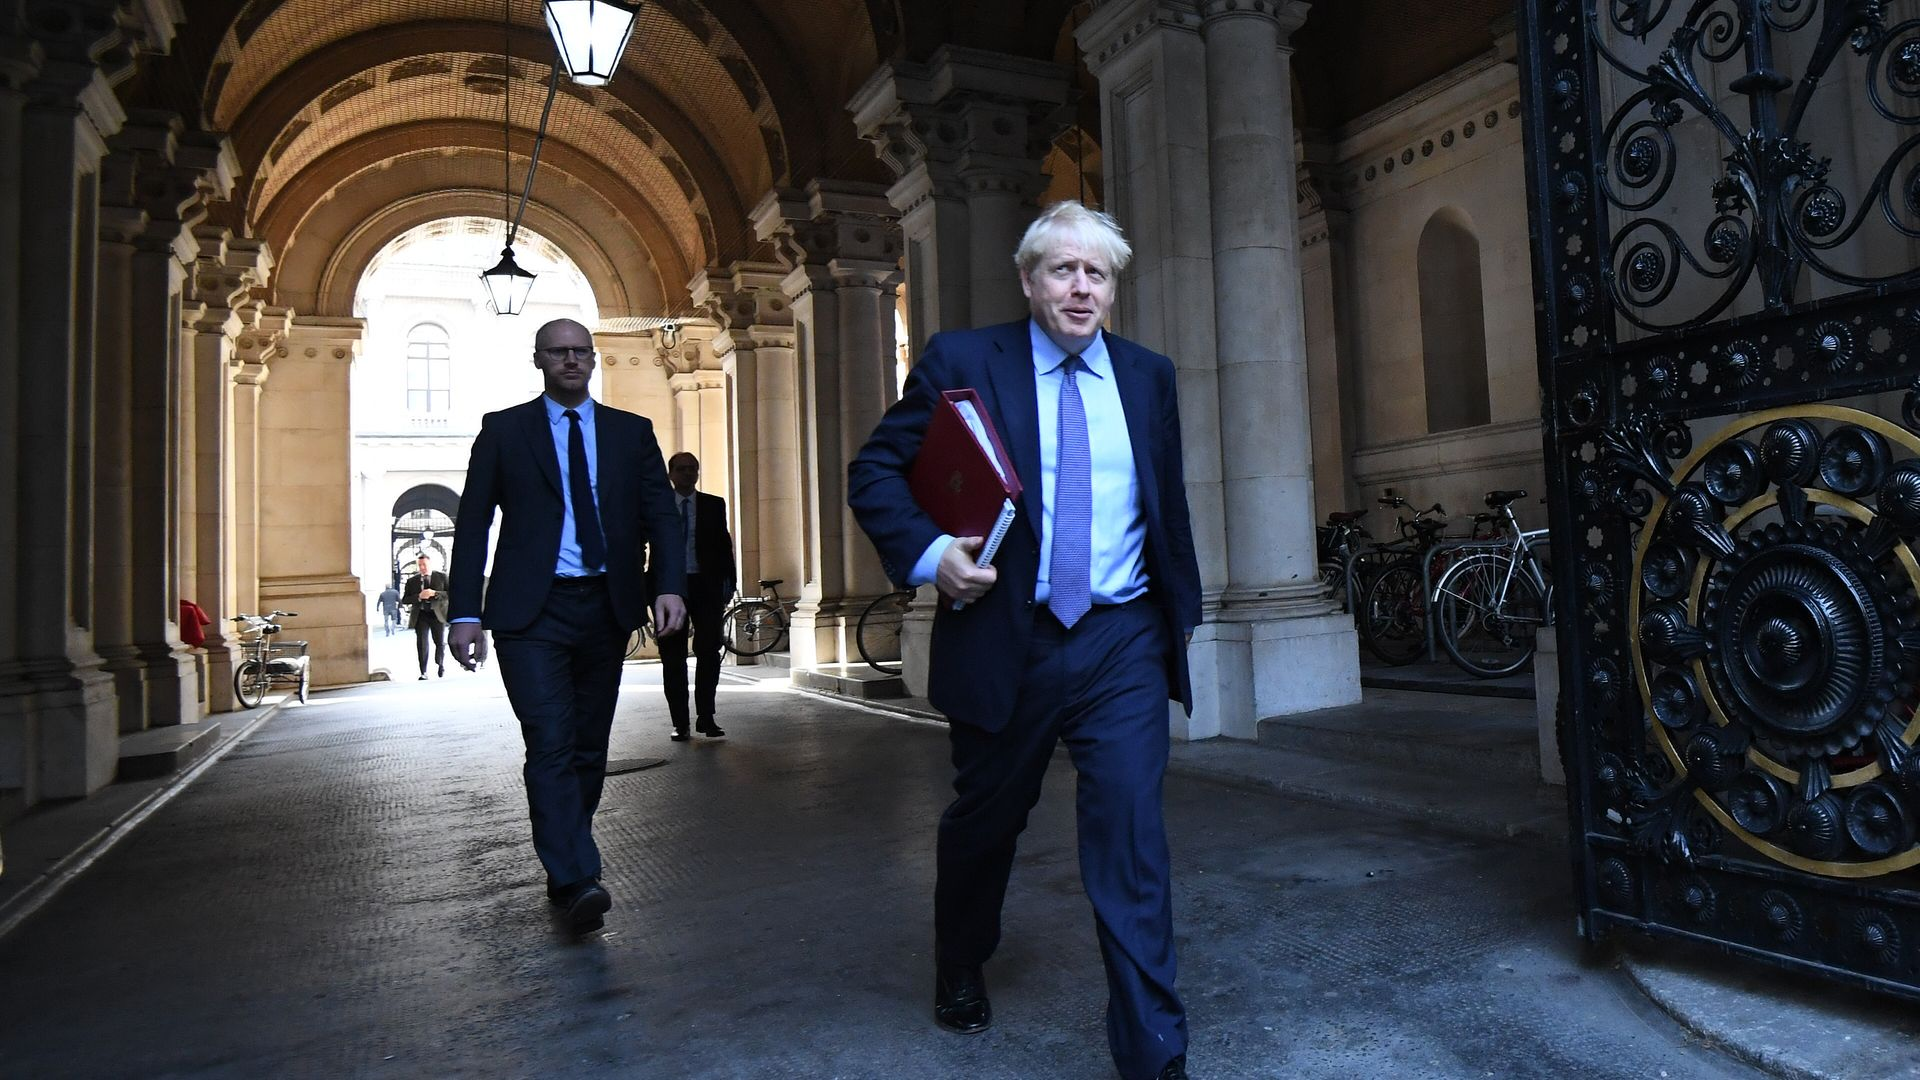 Prime Minister Boris Johnson leaves a Cabinet meeting at the Foreign and Commonwealth Office, London. - Credit: PA